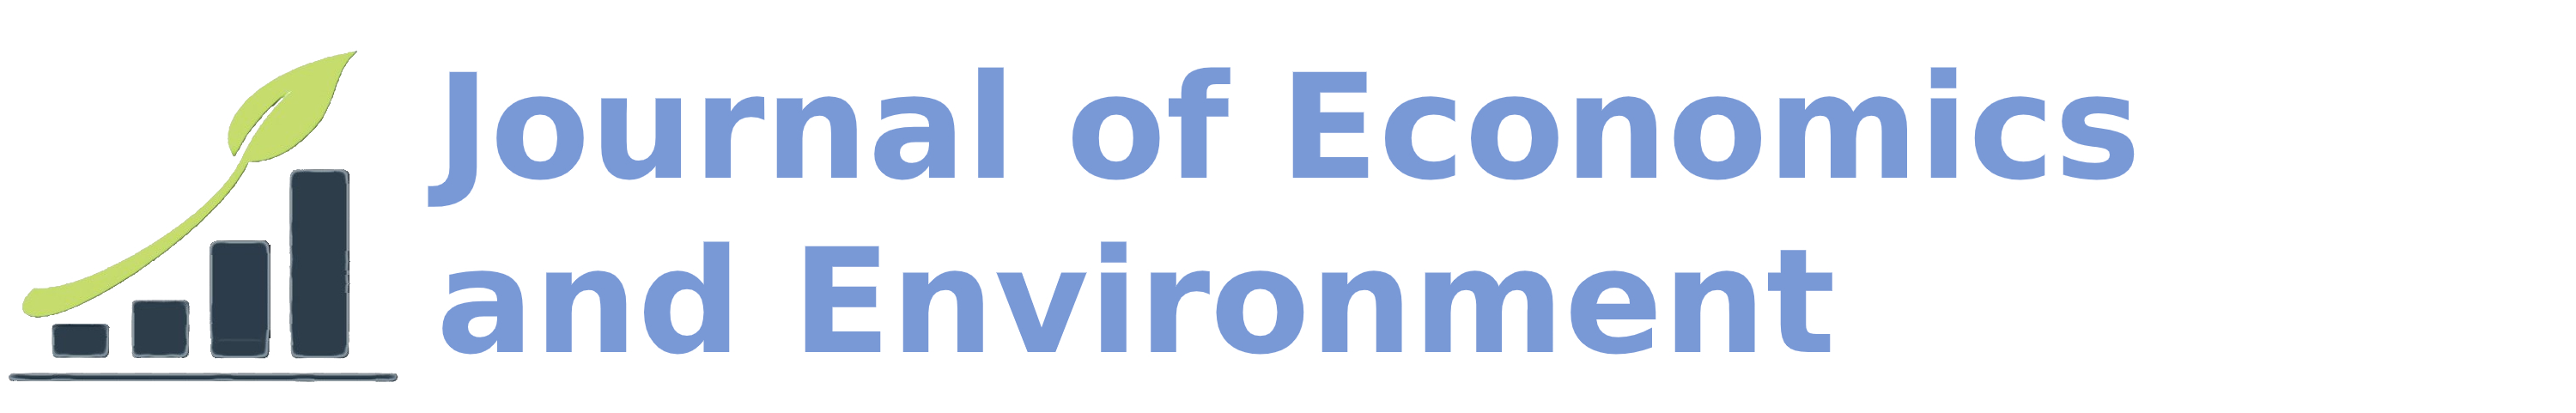 Journal of Economics and Environment